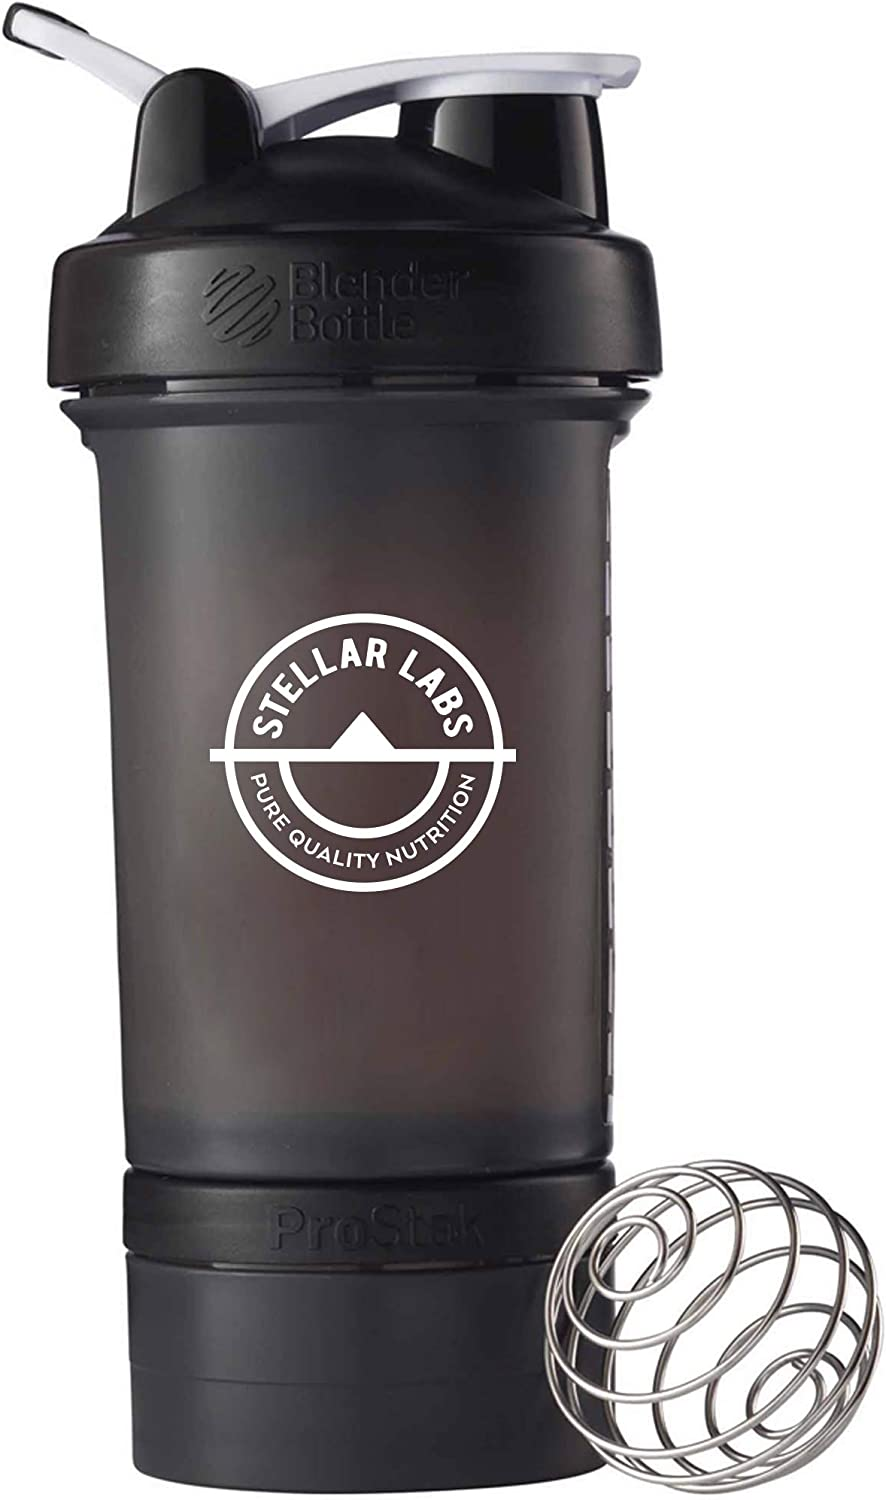 Stellar Labs 32-Ounce Leak Proof Wire Whisk Blender Bottle with On-The-Go Snack Compartment and Wire Whisk